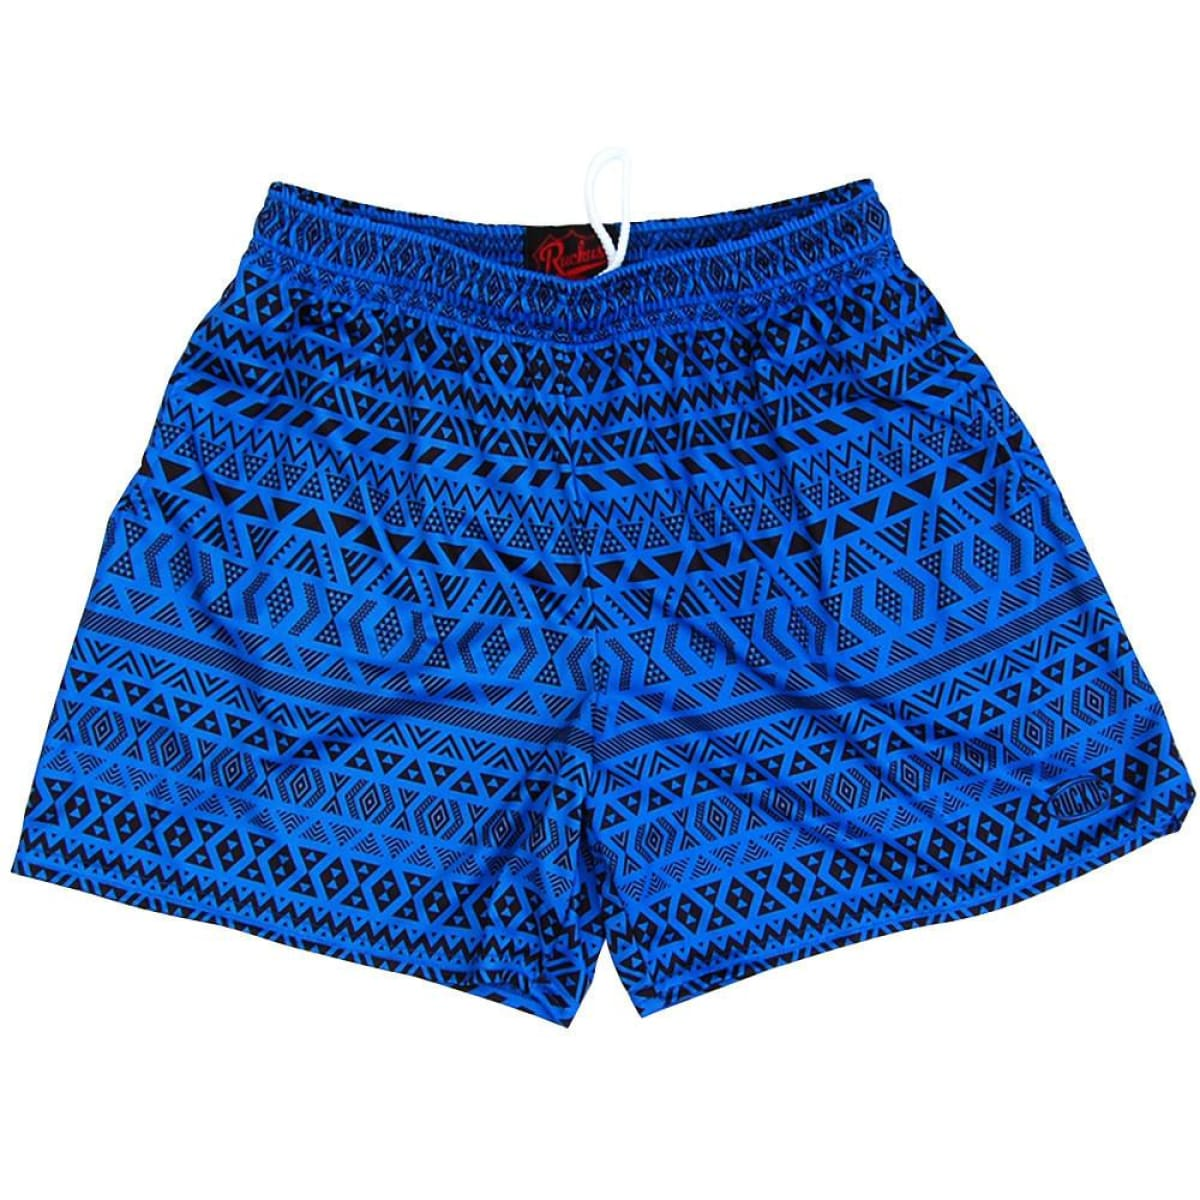 Ruckus Maori Rugby Shorts - Cyan / Adult Small - Rugby Cut Training Shorts